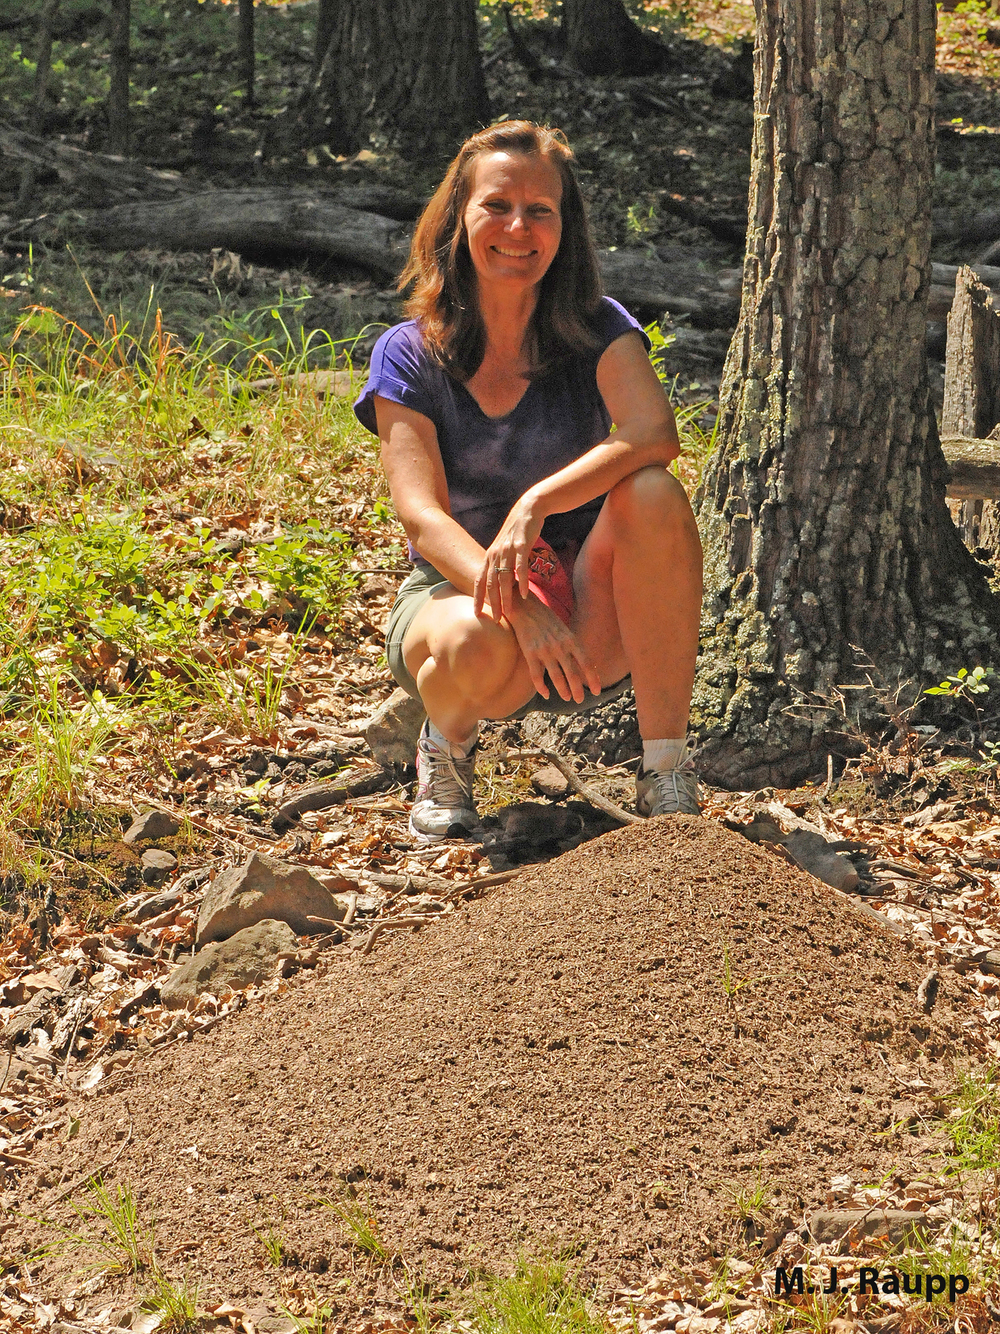 Even modest Allegheny mound ant nests can bring a smile to an entomologist's face.